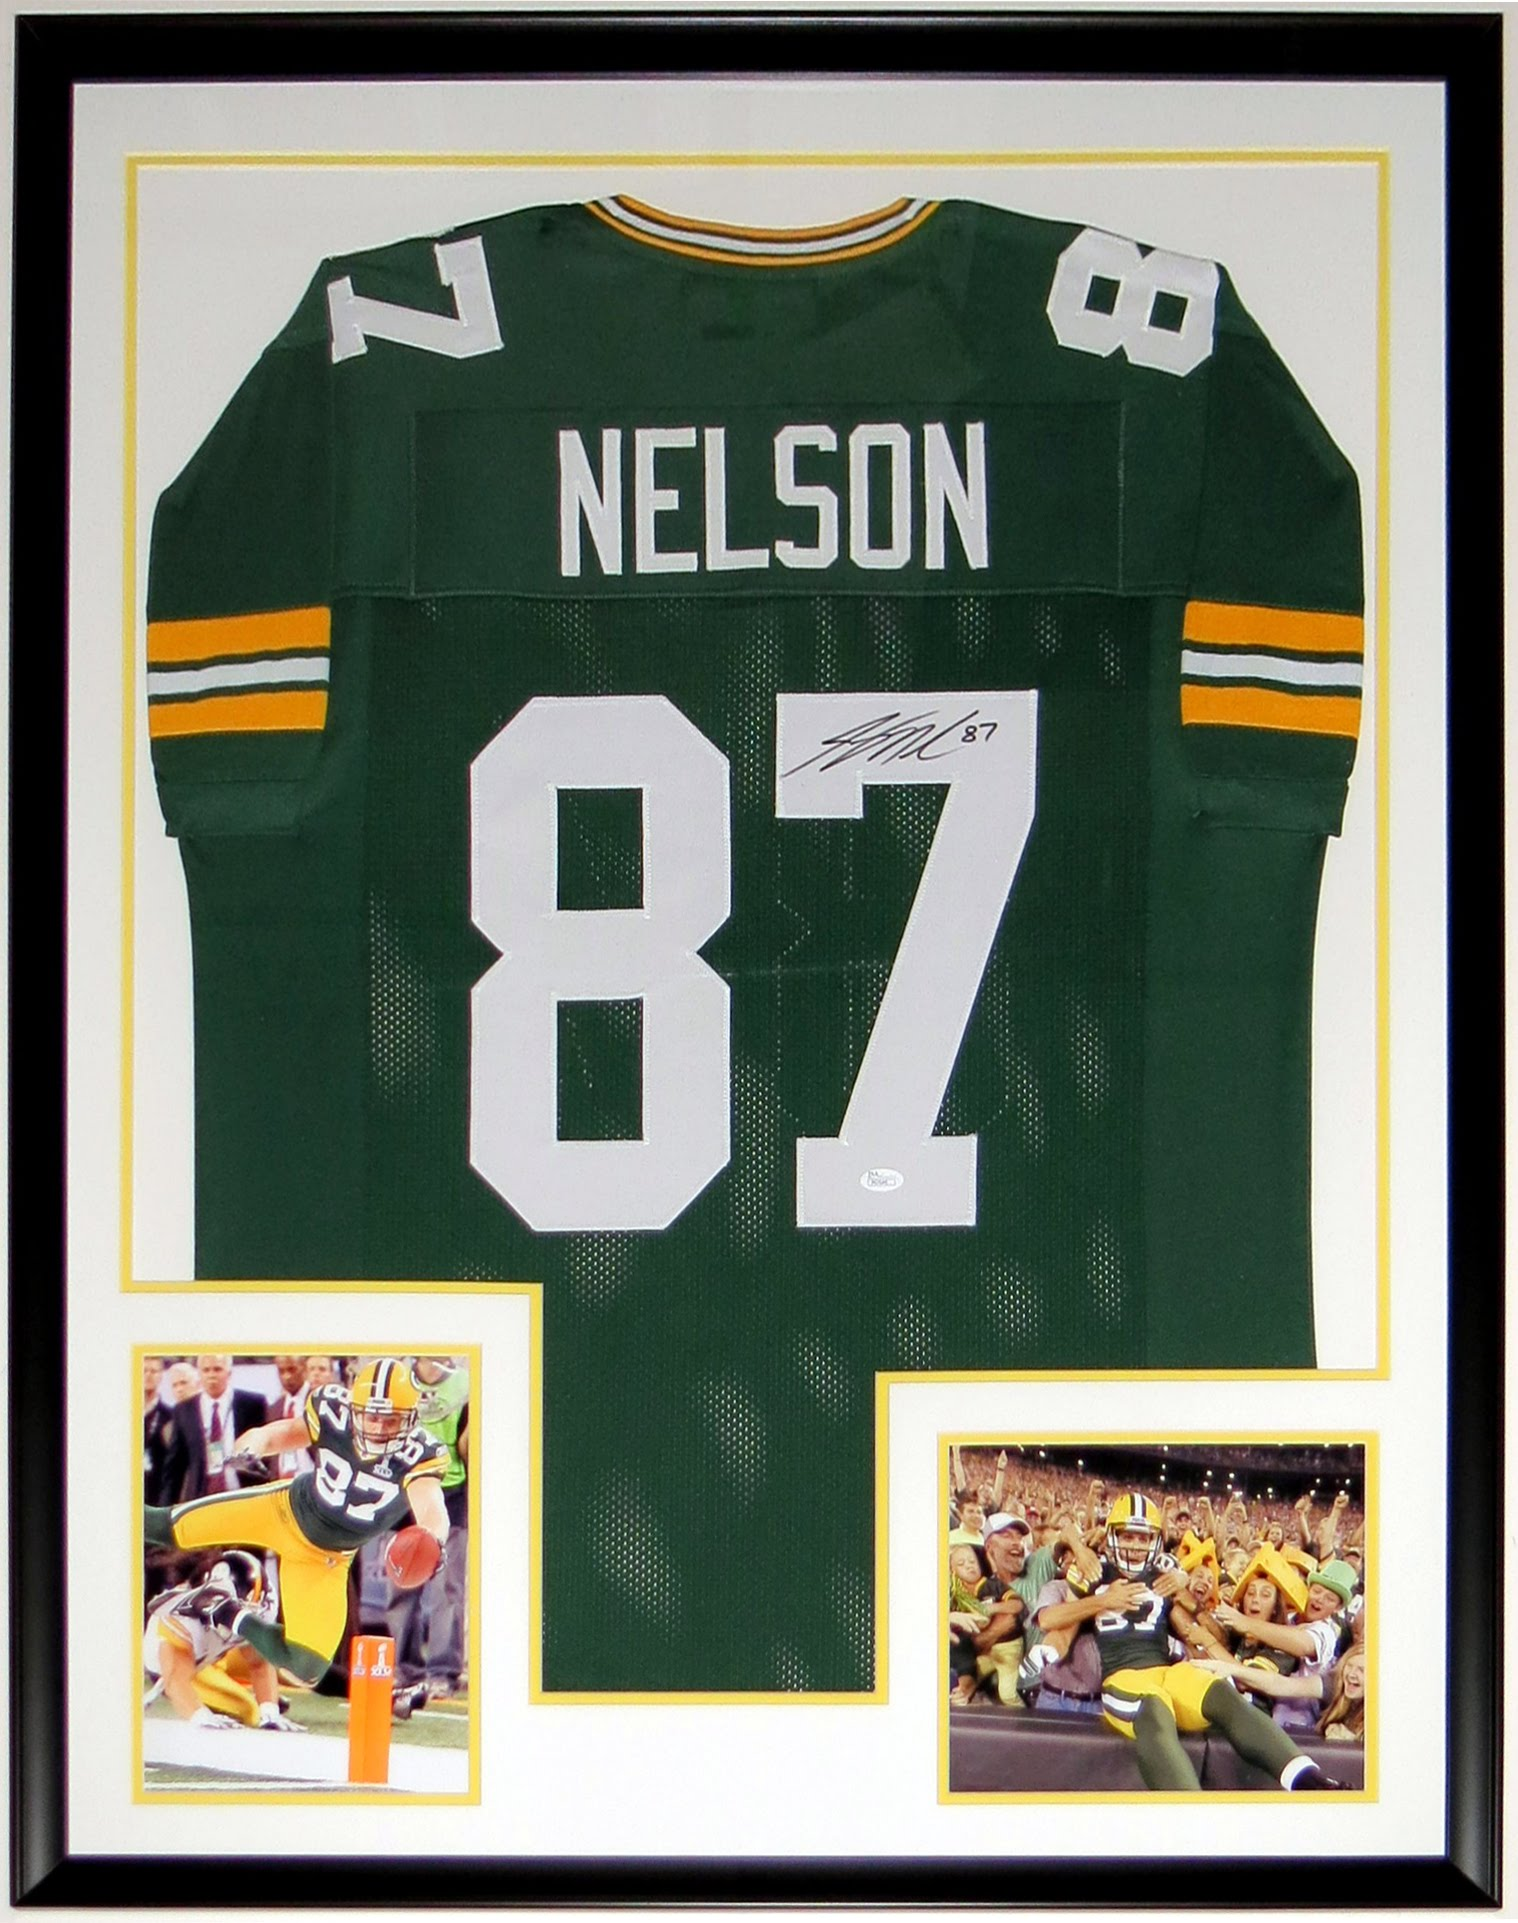 Jordy Nelson Signed Green Bay Packers Jersey - JSA COA Authenticated - Professionally Framed & 2 8x10 Photo 34x42